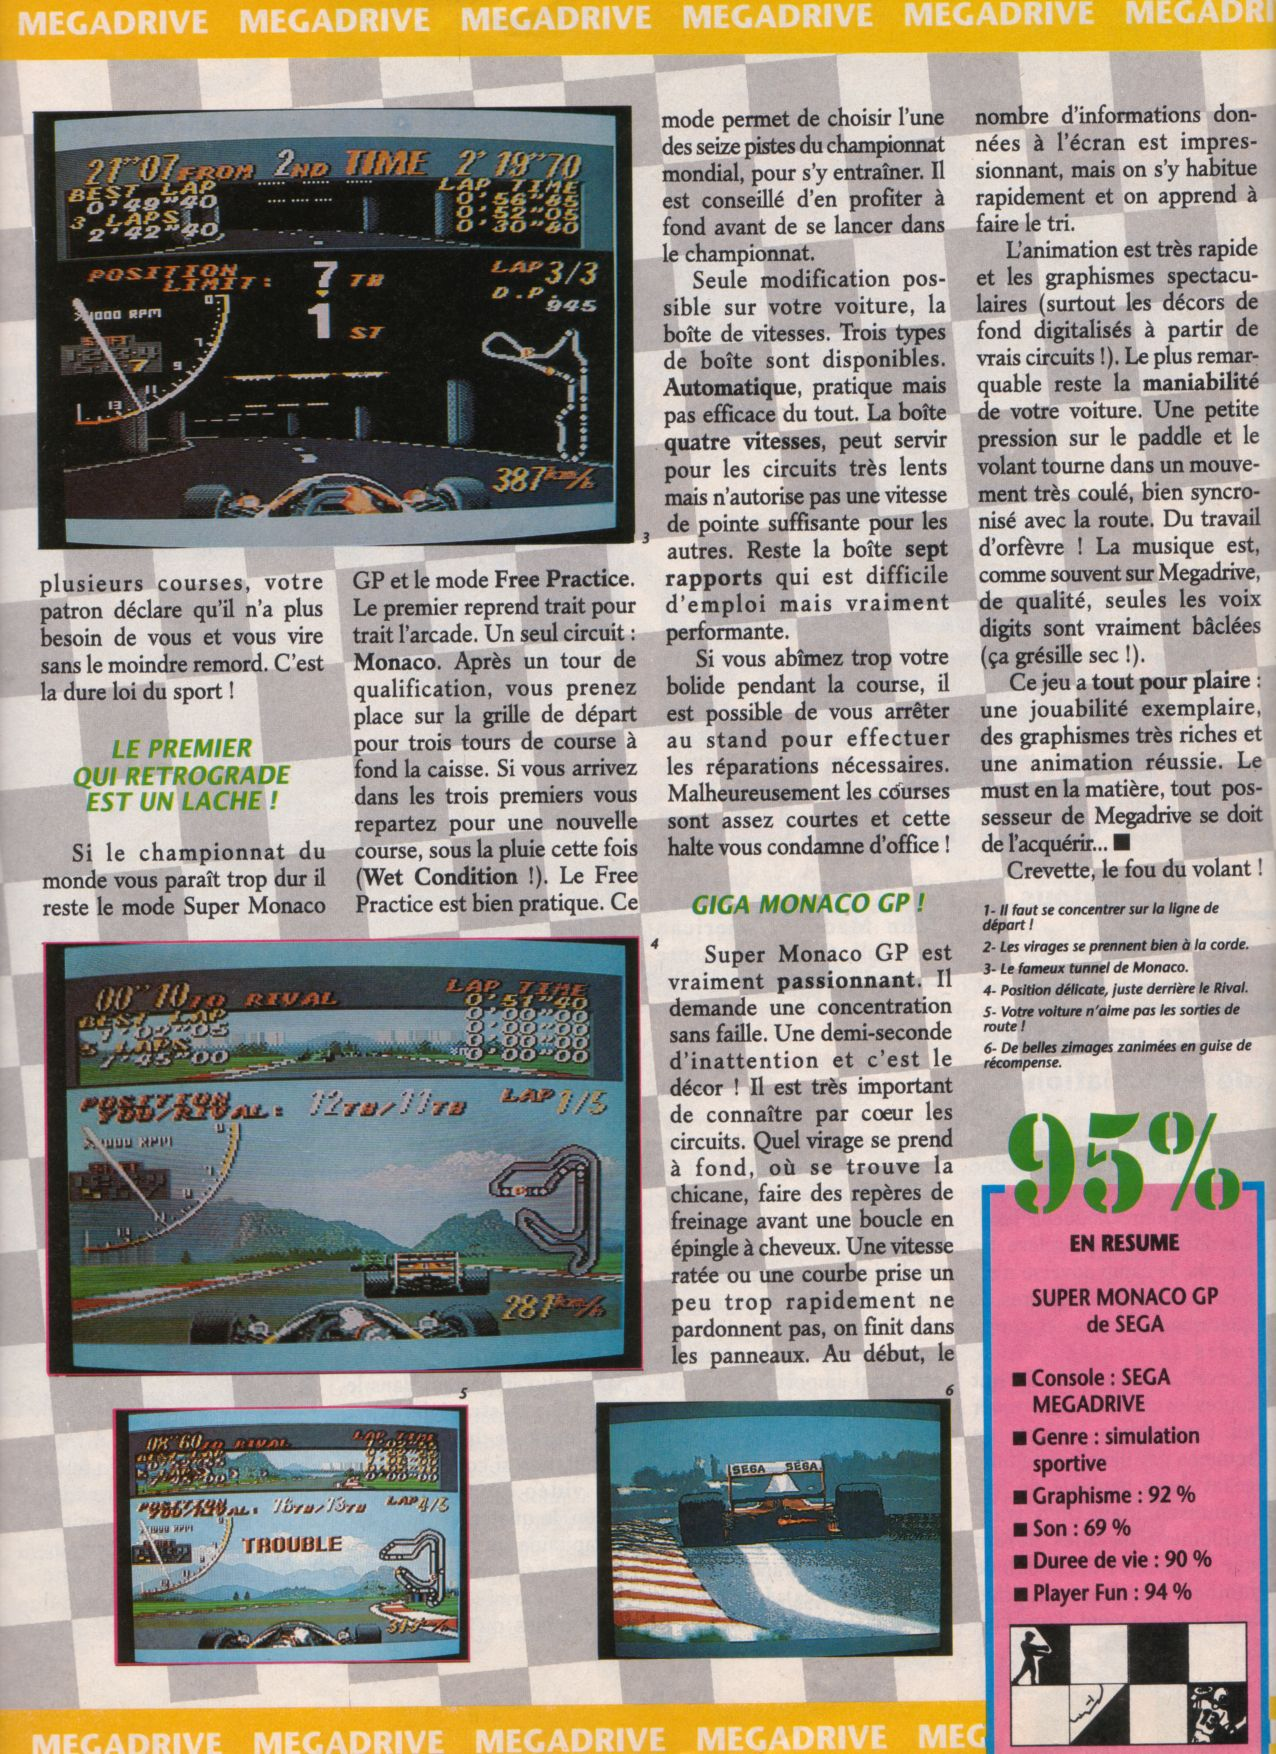 Le topic officiel de la Megadrive - Page 26 Player%20One%20005%20-%20Page%20031%20%281991-01%29